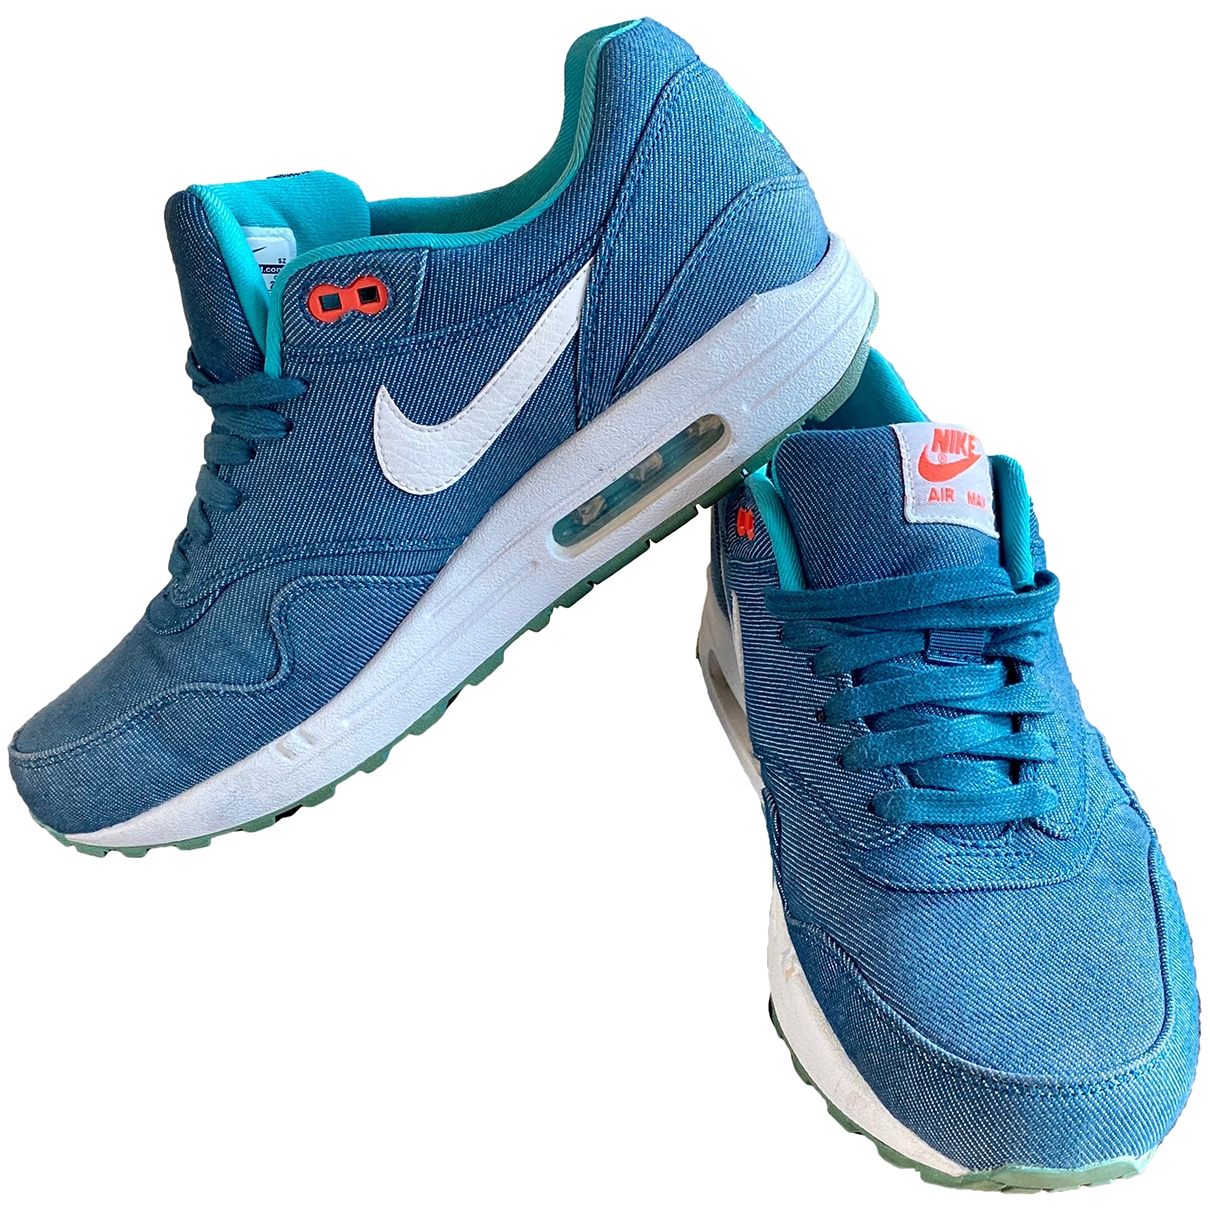 Nike Air Max 1 Sneakers in  Tuerkis Polyester